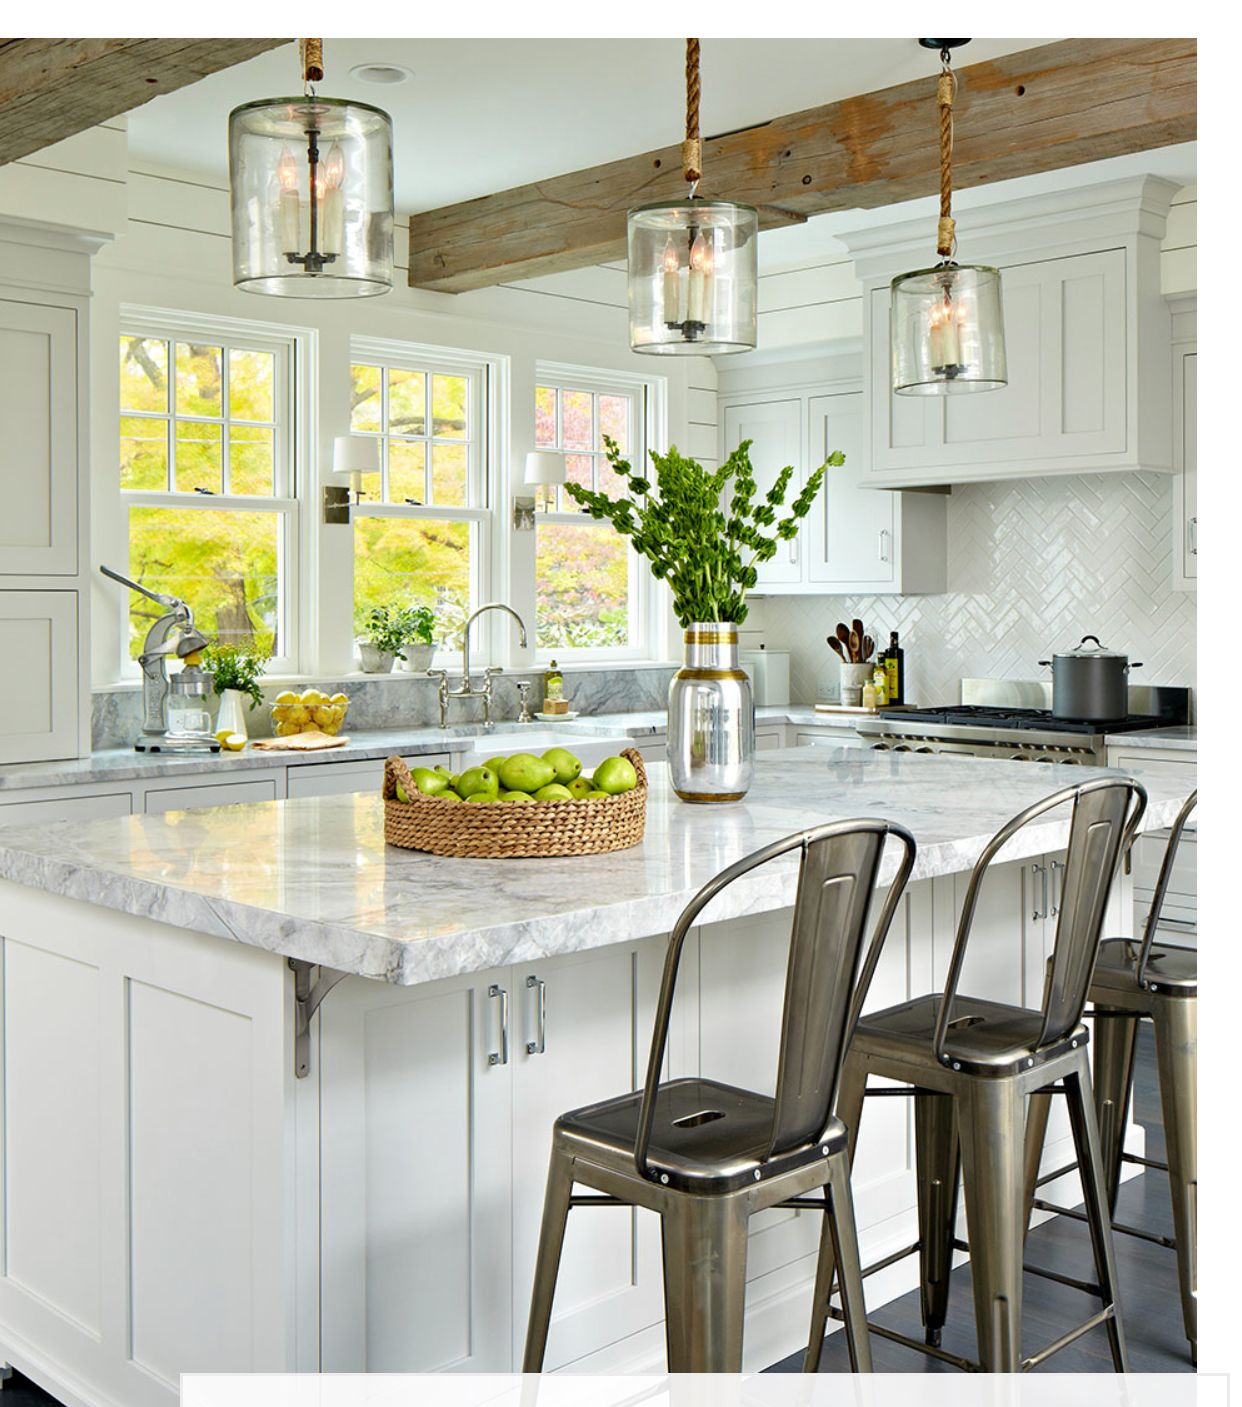 How To Choose the Right Bar Stools For Your Kitchen Island